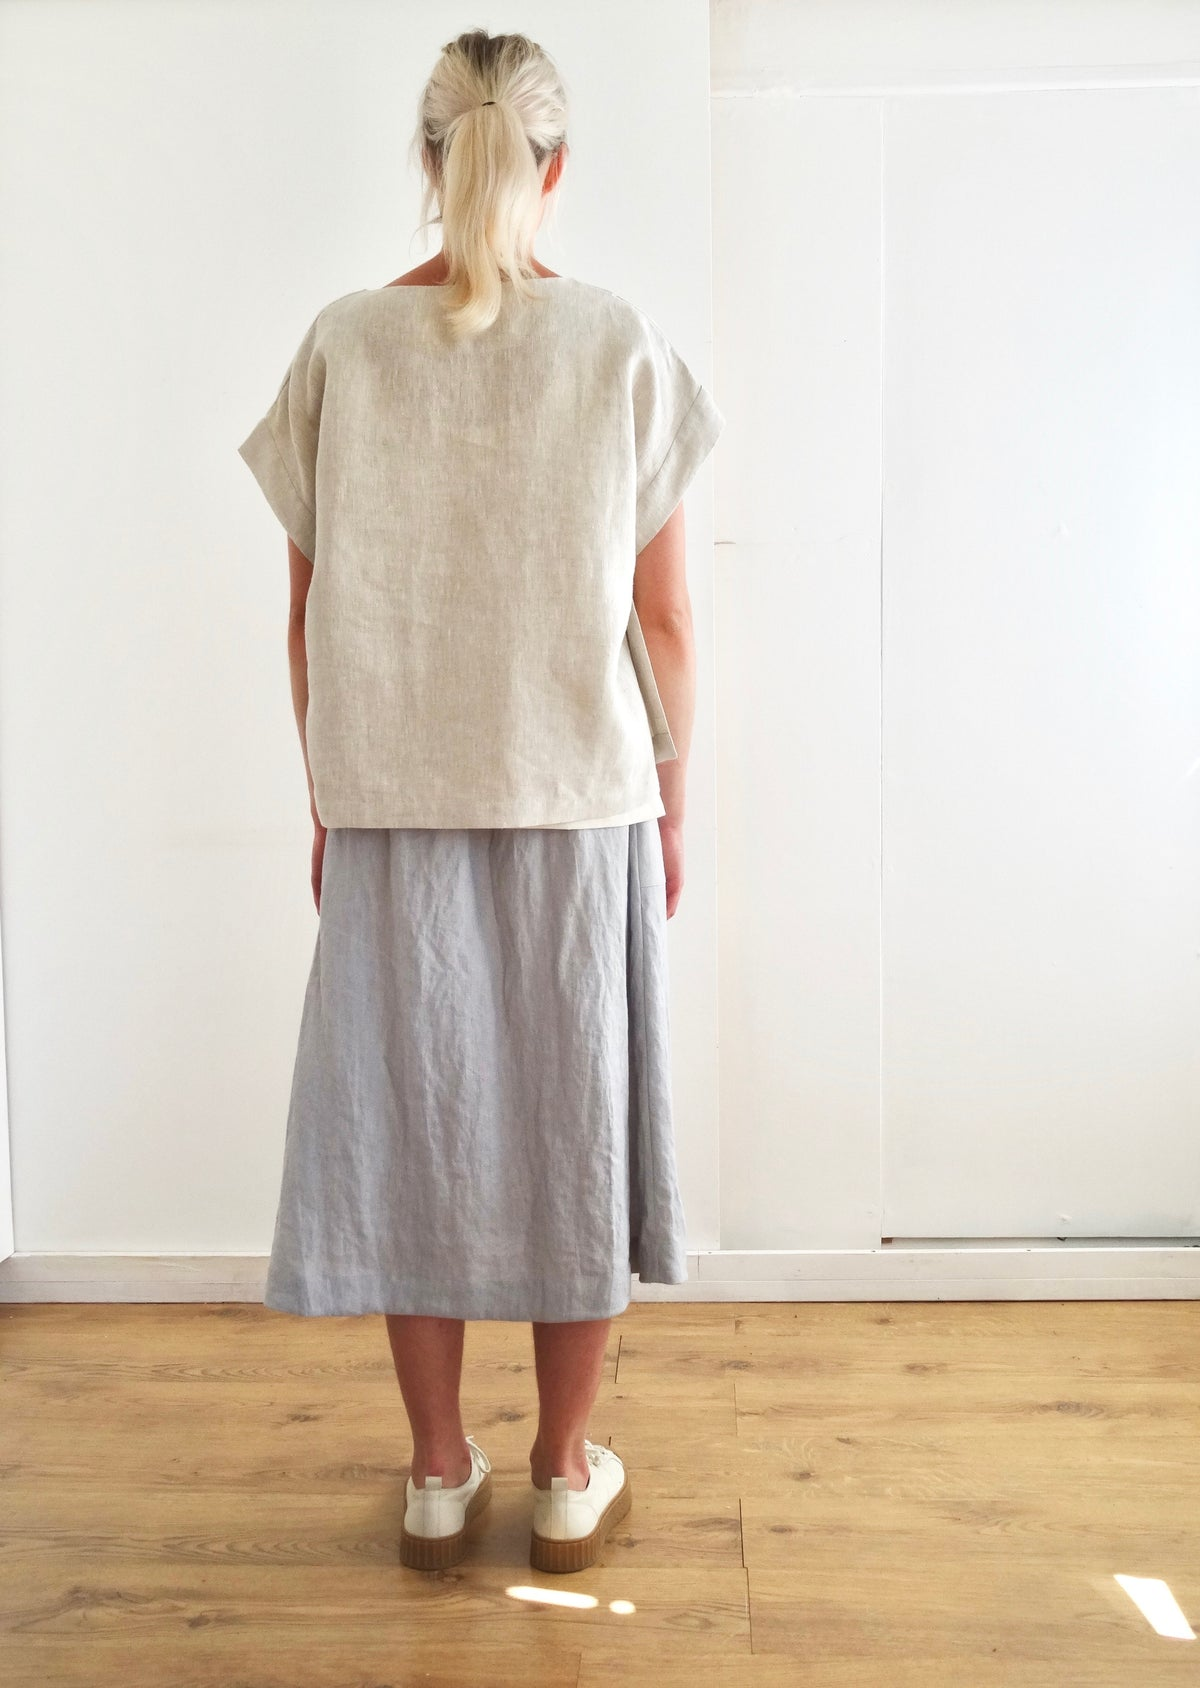 Oatmeal linen over-top